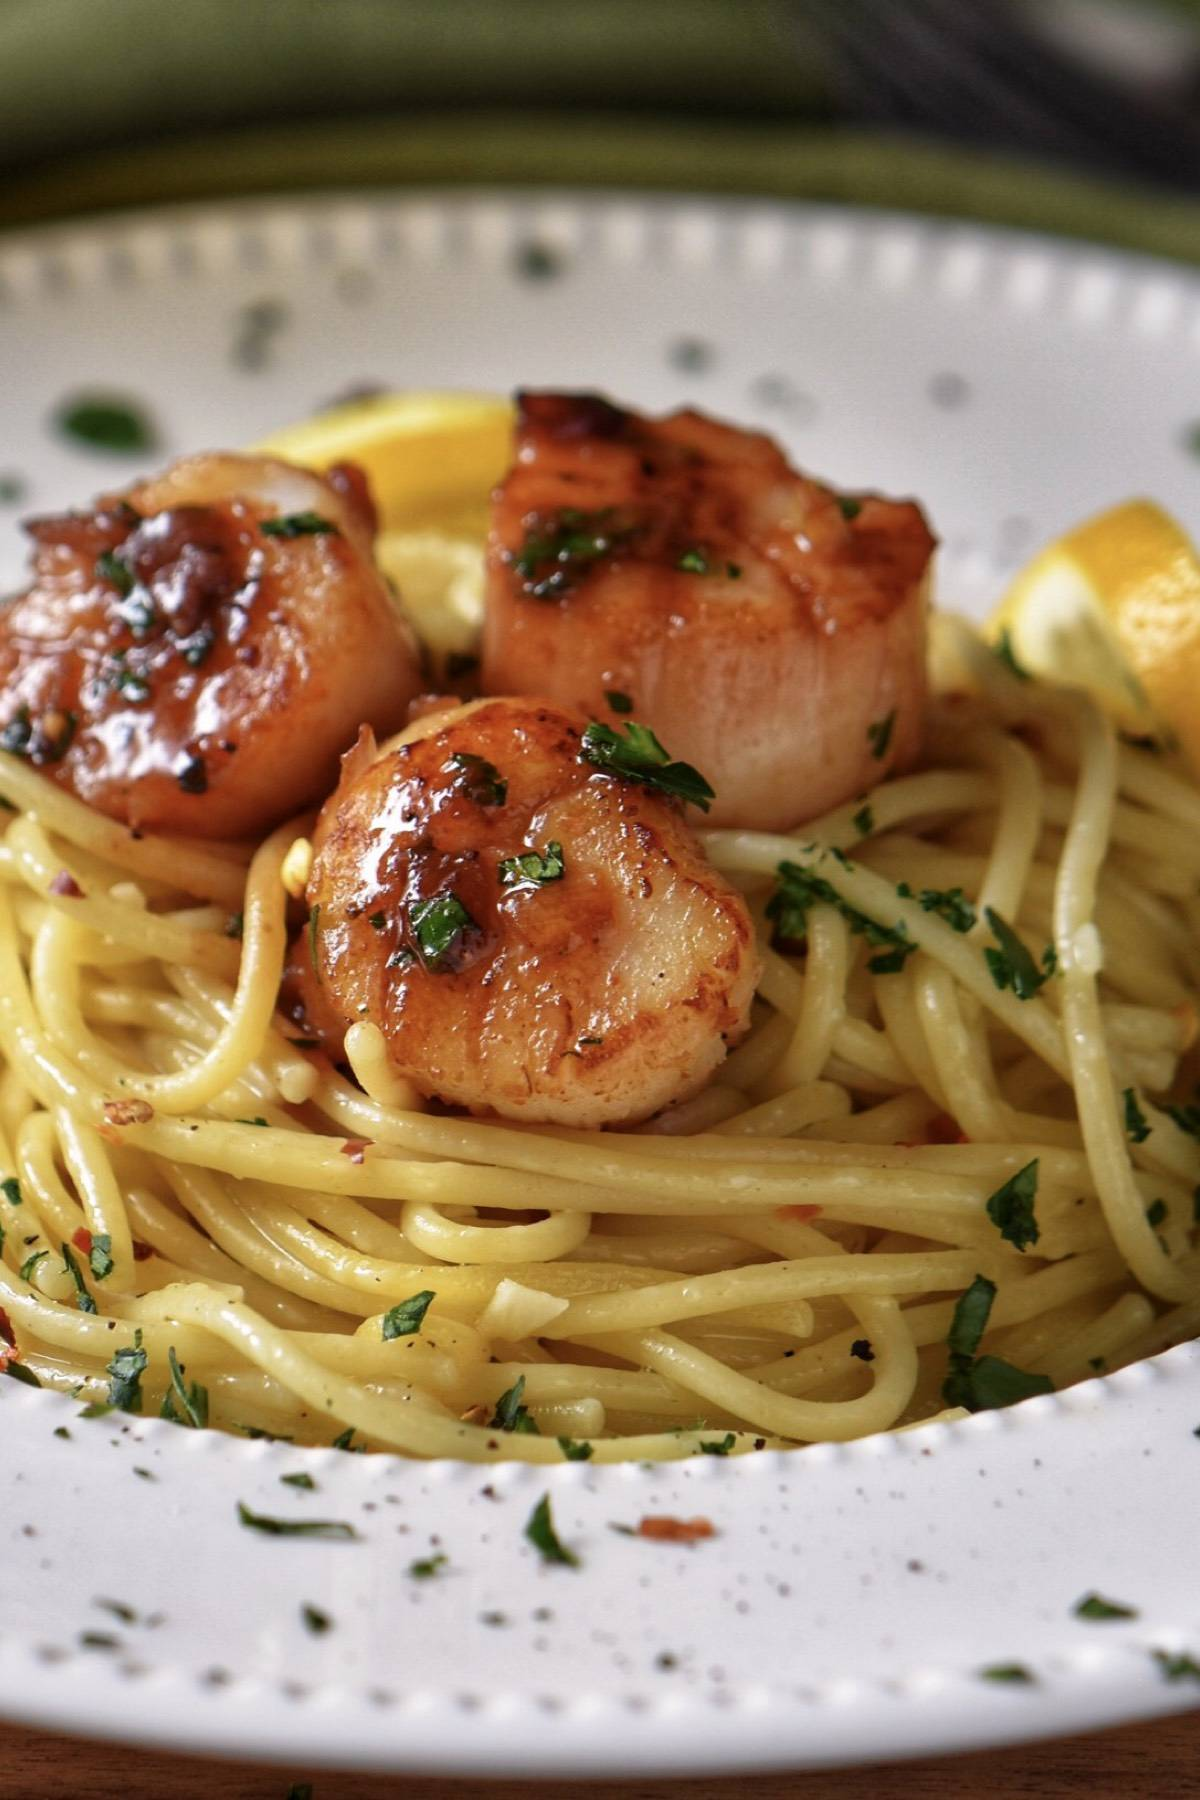 Pan seared scallops placed on pasta in a white bowl and garnished with parsley.